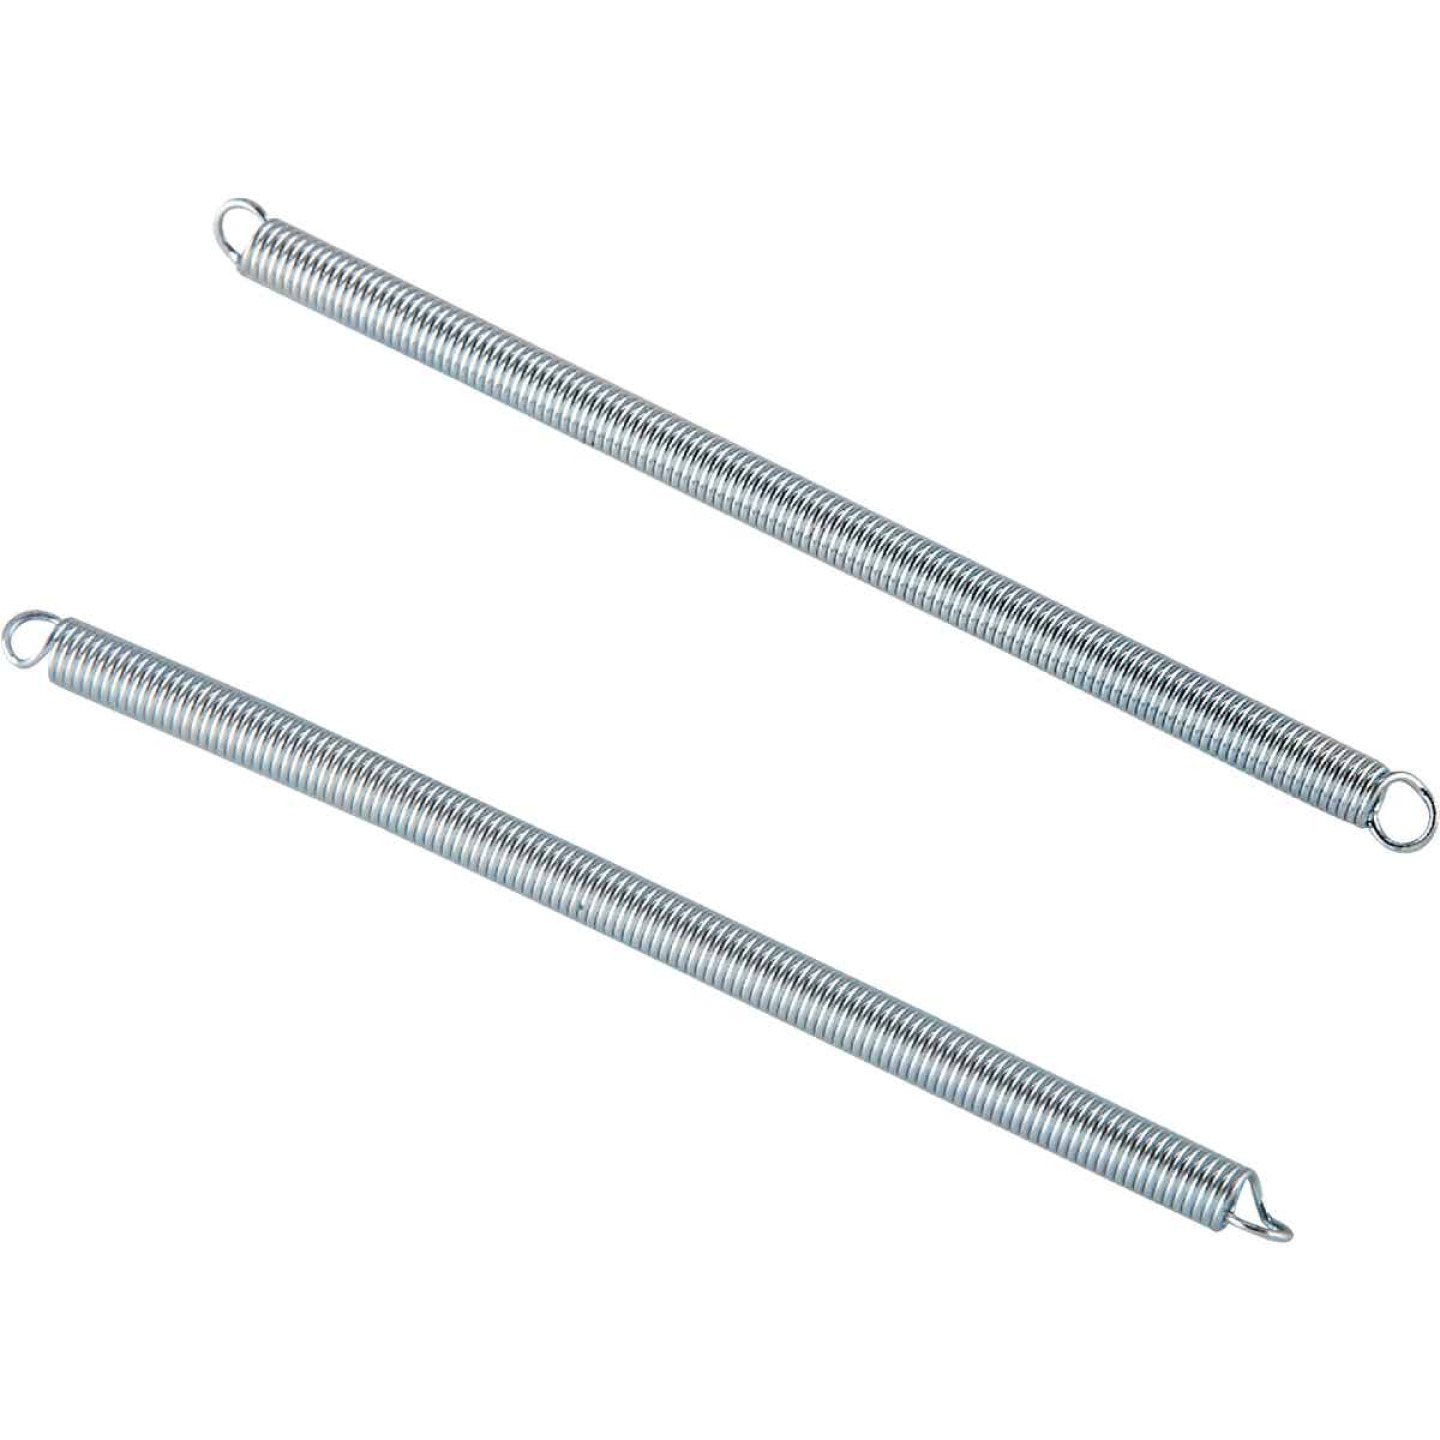 Century Spring 2-5/8 In. x 3/4 In. Extension Spring (2 Count) Image 1